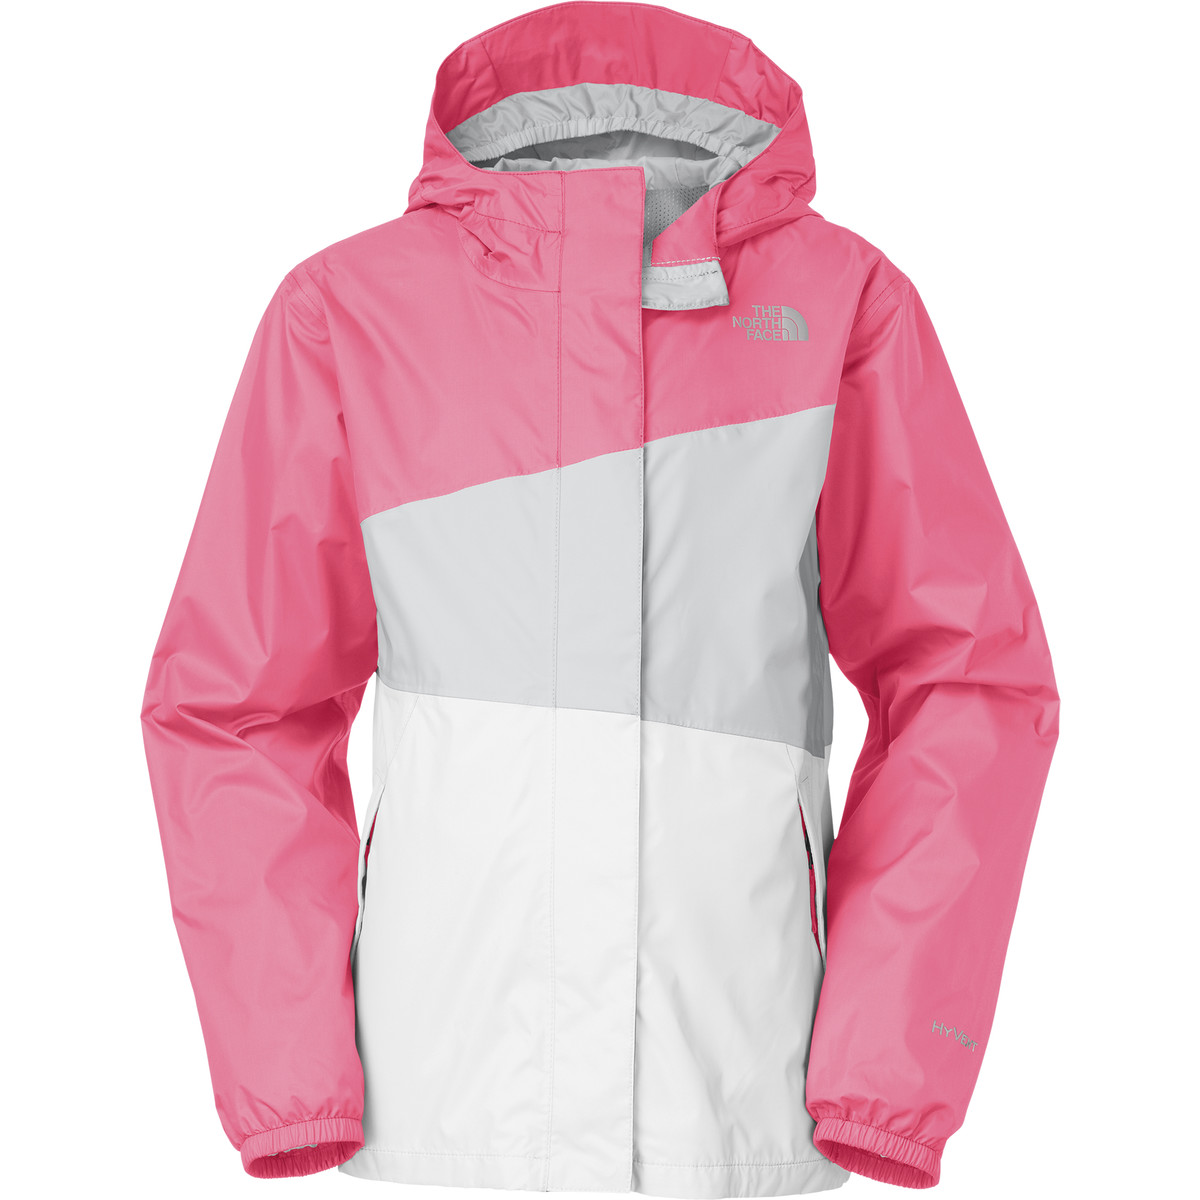 The North Face Caiman Rain Jacket